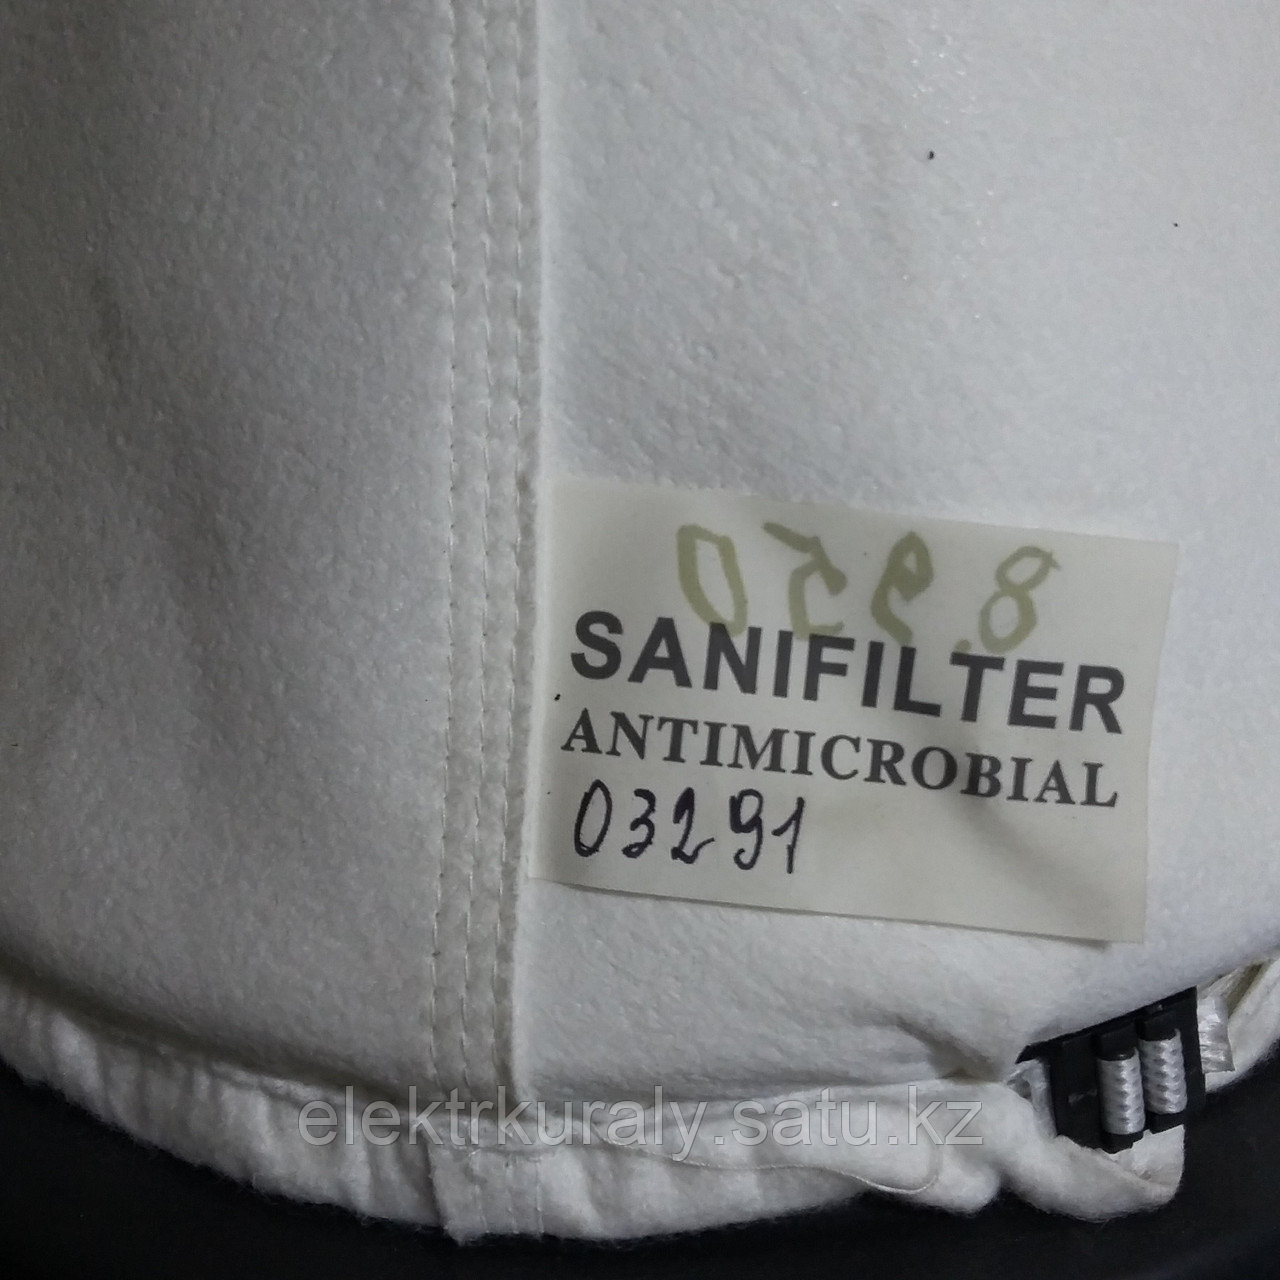 Фильтр в сборе SOTECO SANIFILTER ANTIMICROBIAL 03291